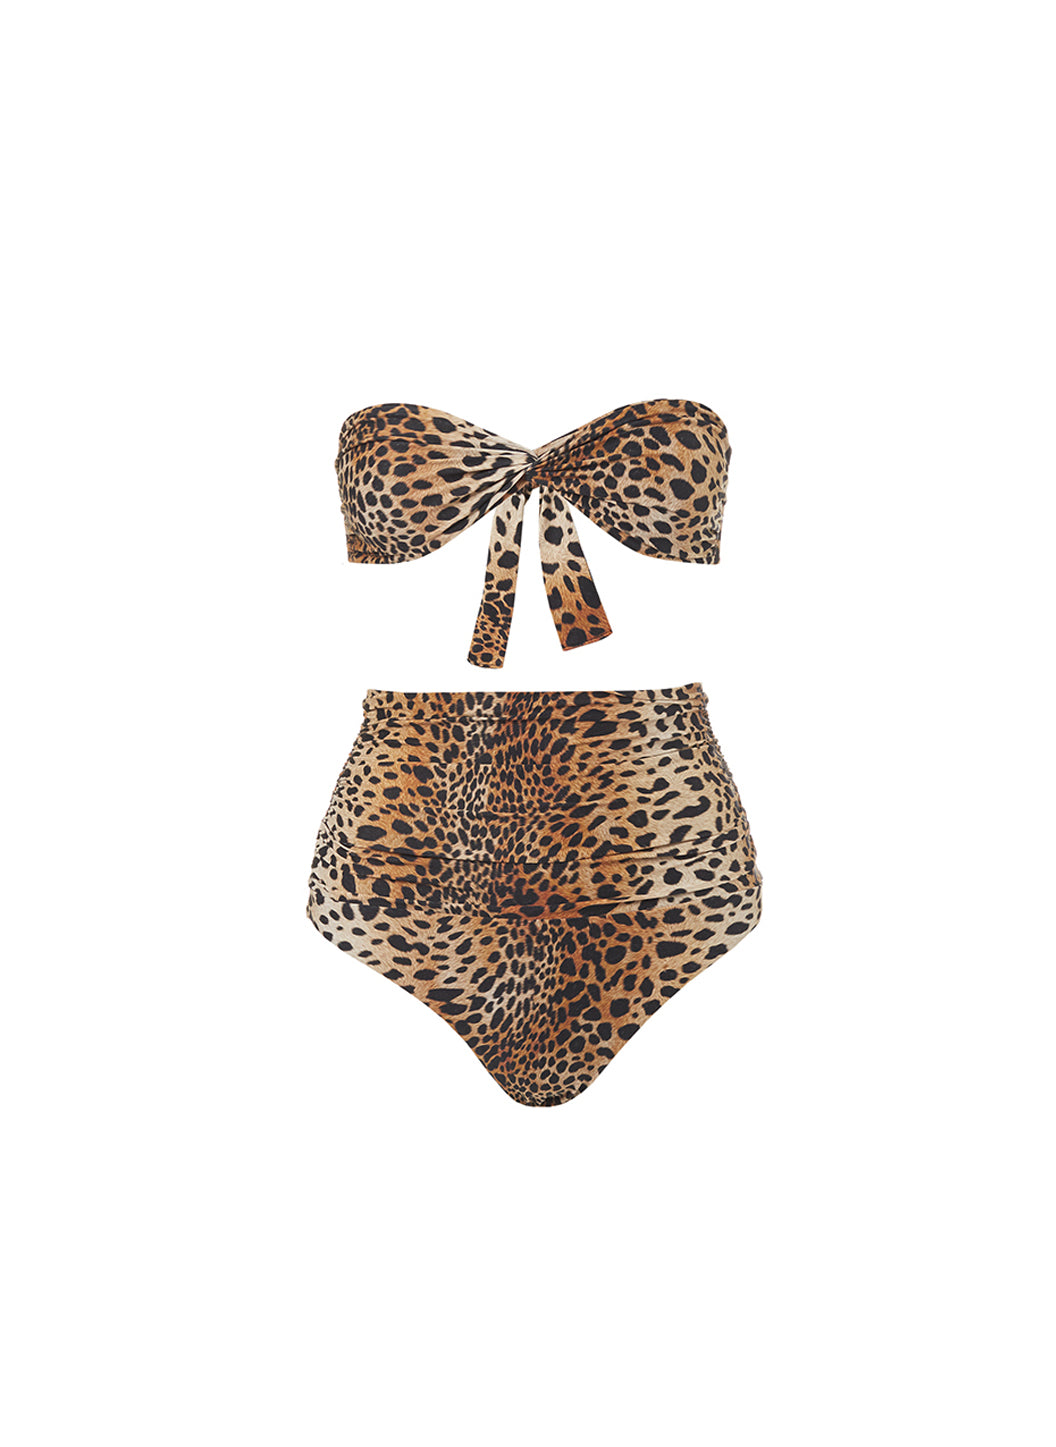 Lyon Cheetah High Waisted Bandeau Bikini